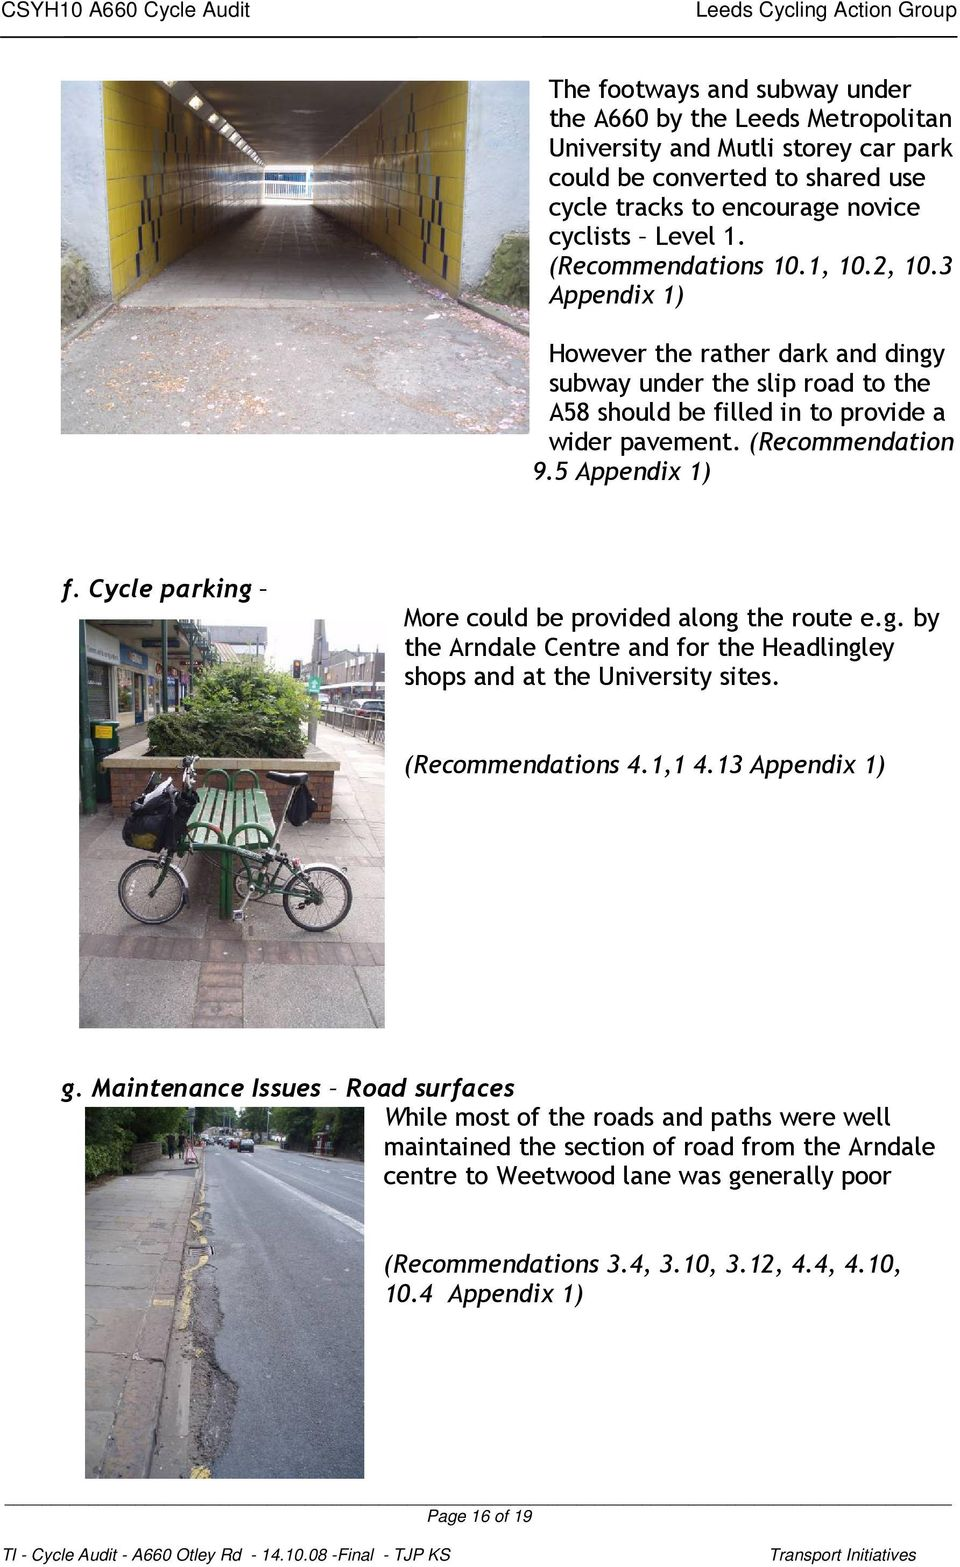 5 Appendix 1) f. Cycle parking More could be provided along the route e.g. by the Arndale Centre and for the Headlingley shops and at the University sites. (Recommendations 4.1,1 4.13 Appendix 1) g.